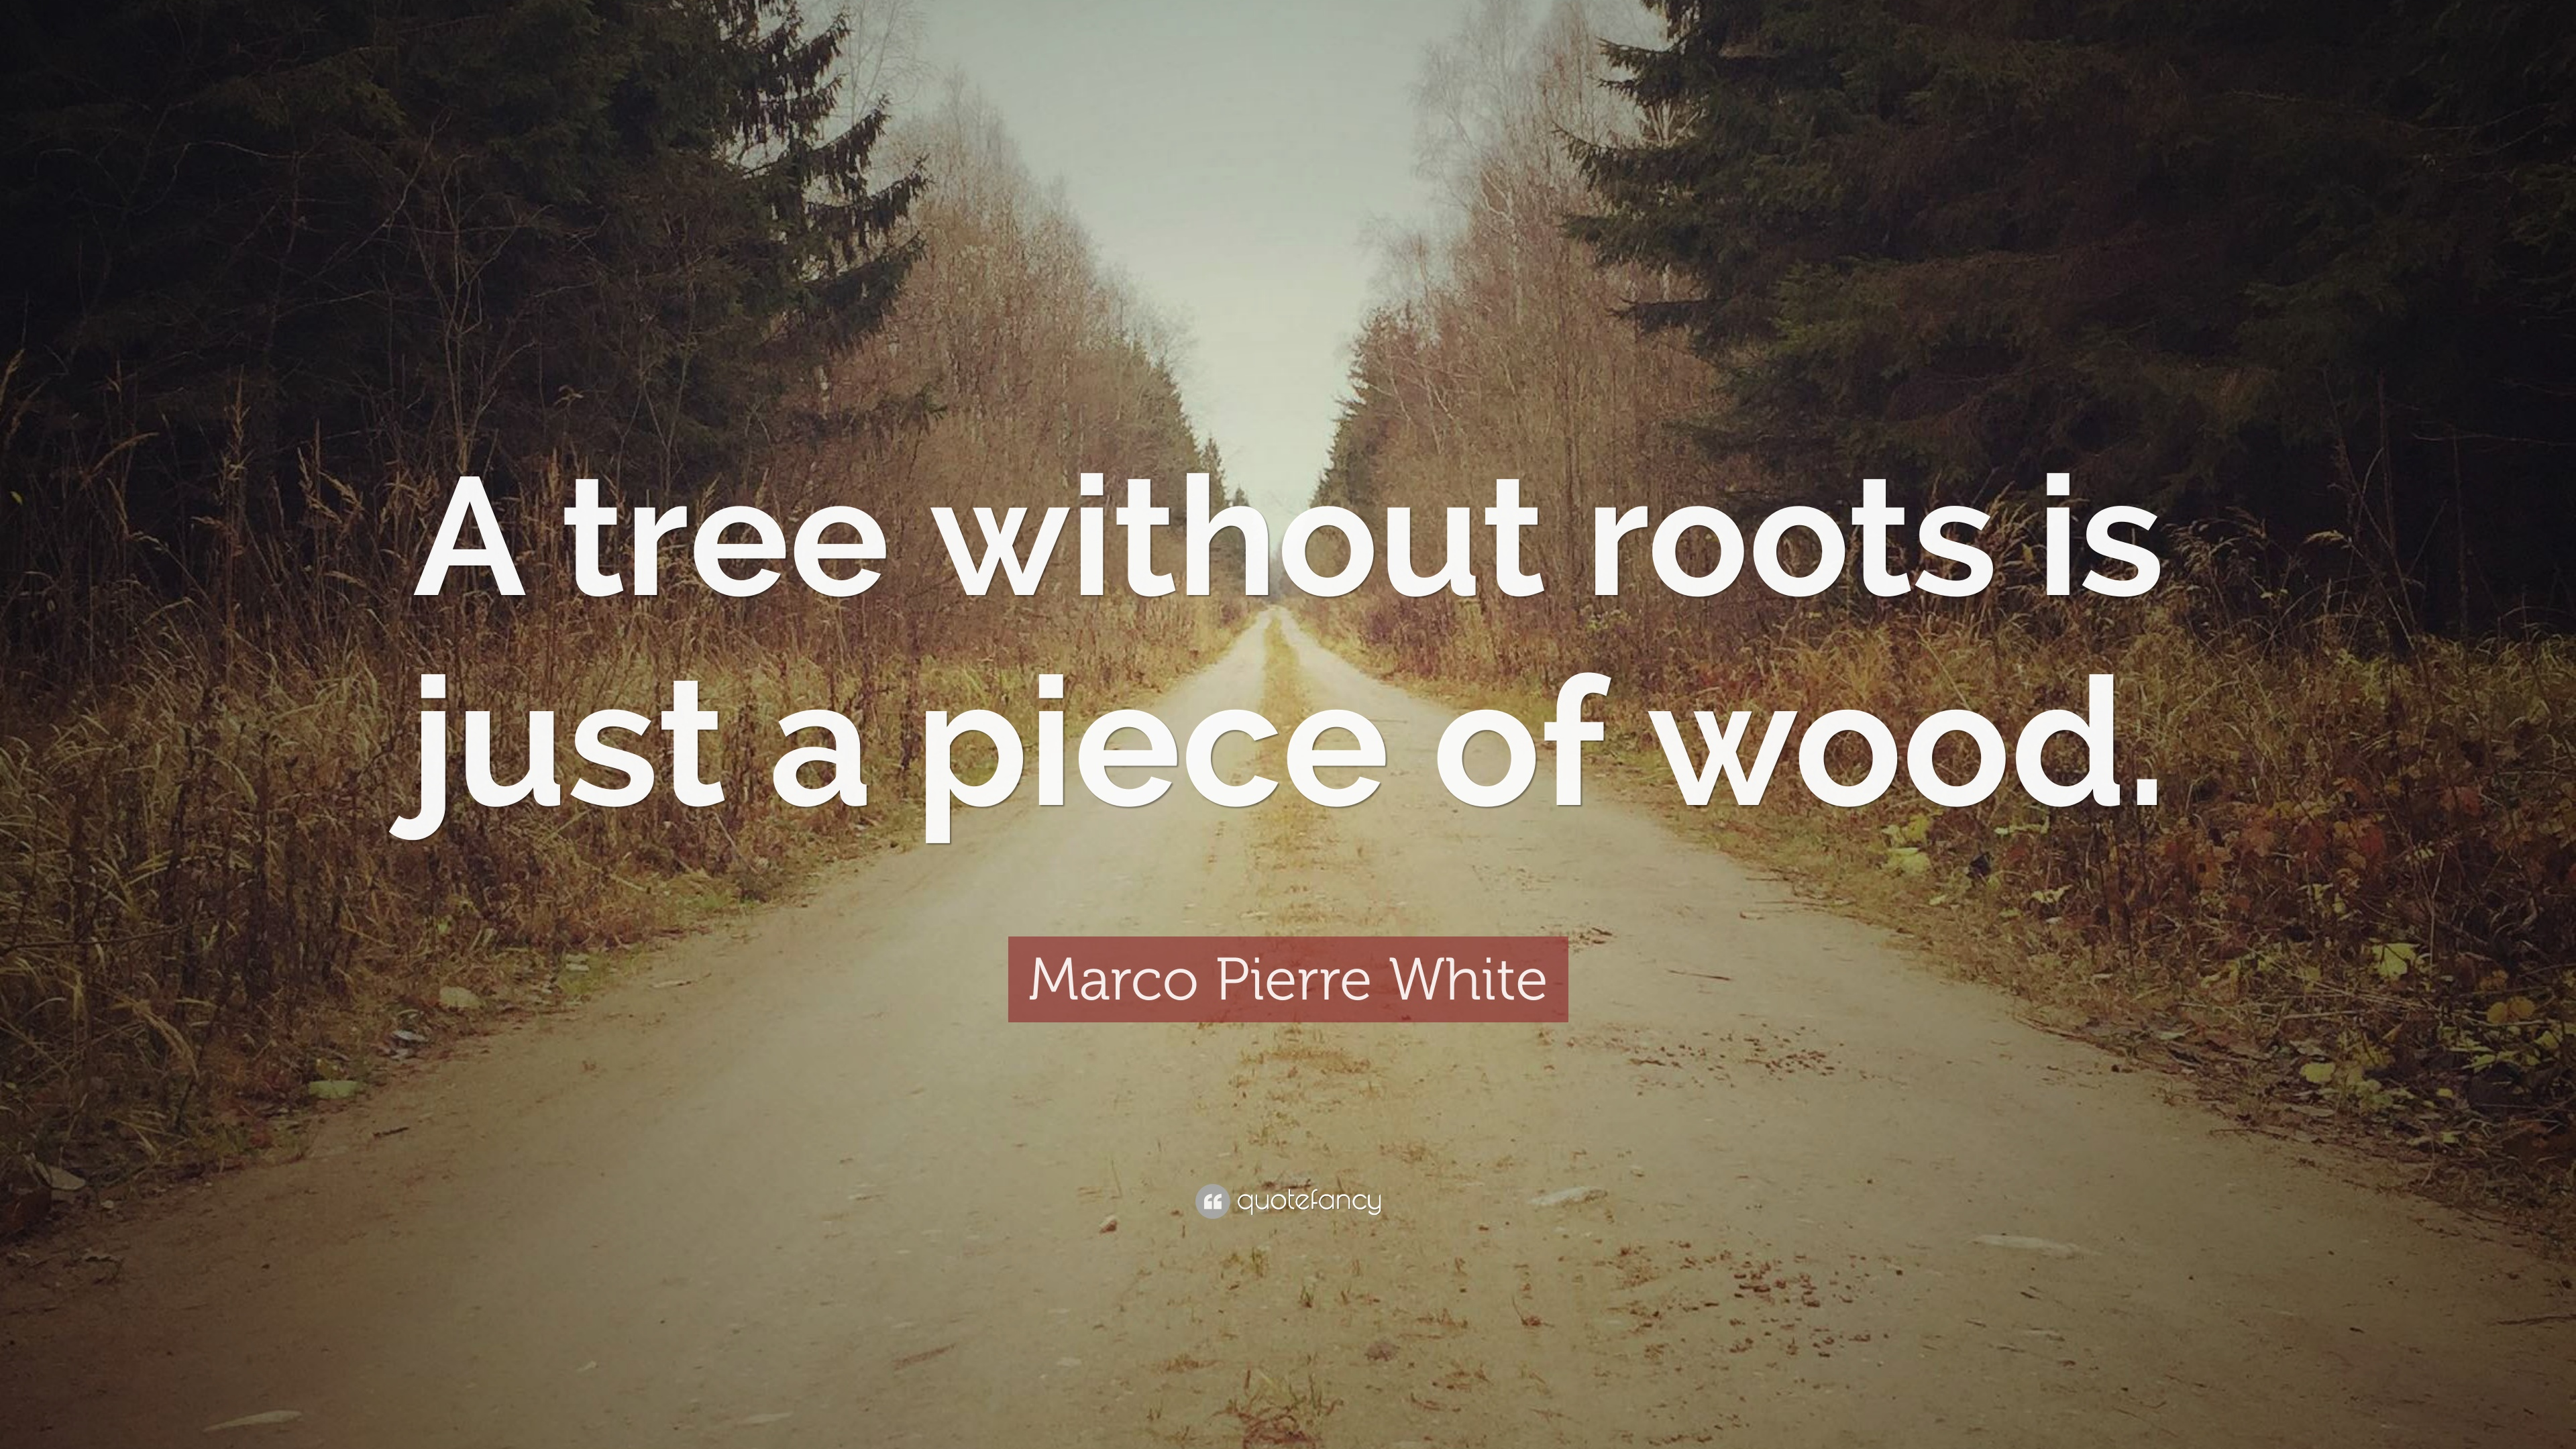 Marco Pierre White Quotes 16 Wallpapers Quotefancy